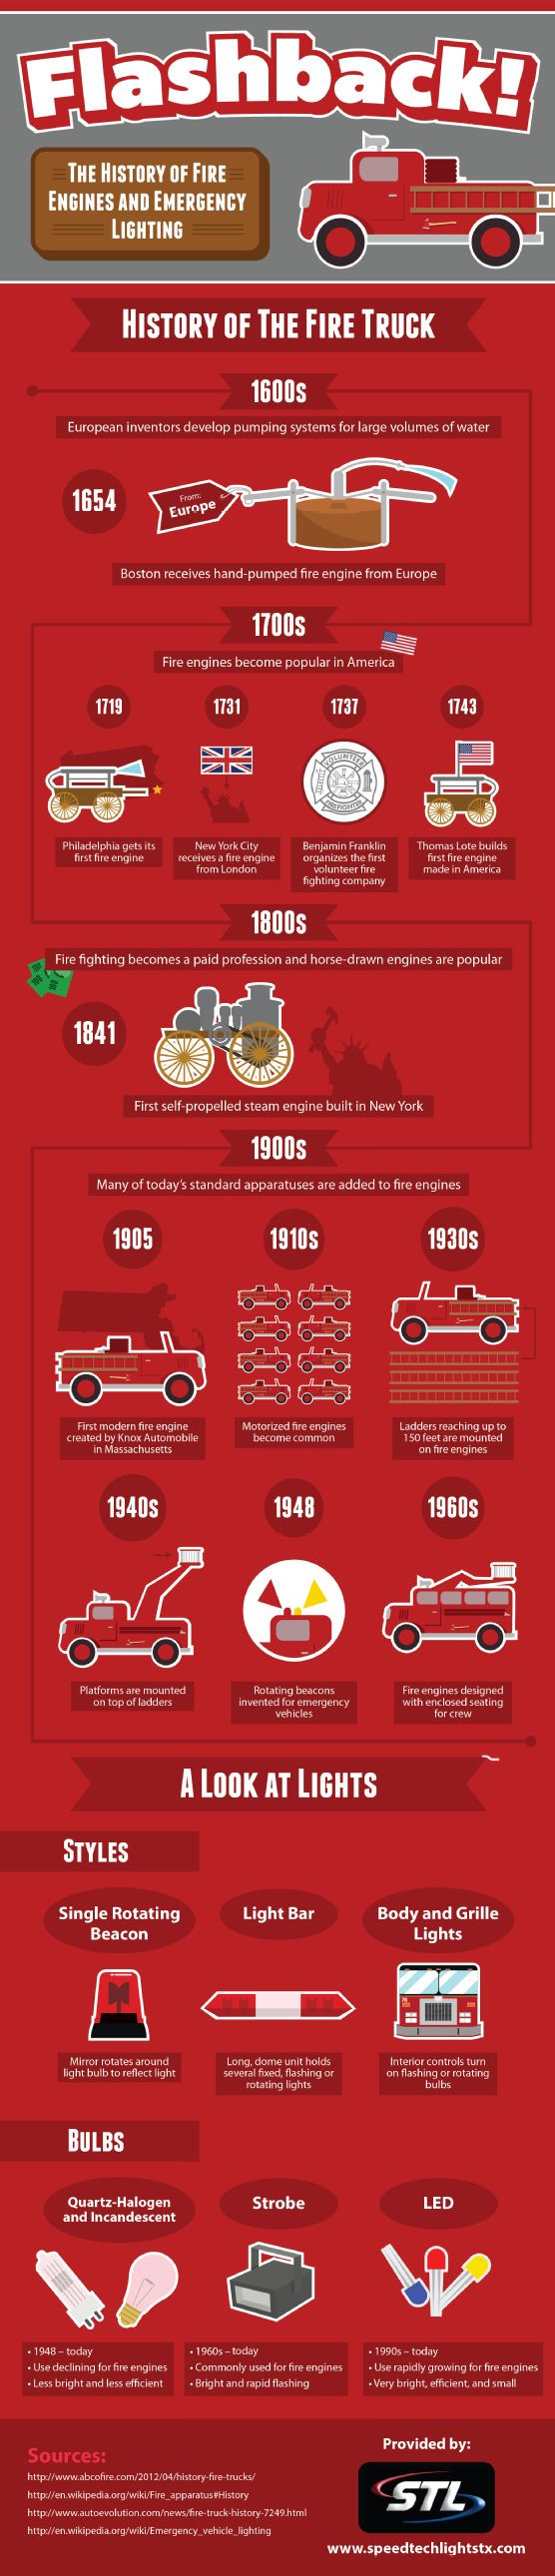 History of Fire Trucks | Shared by LION